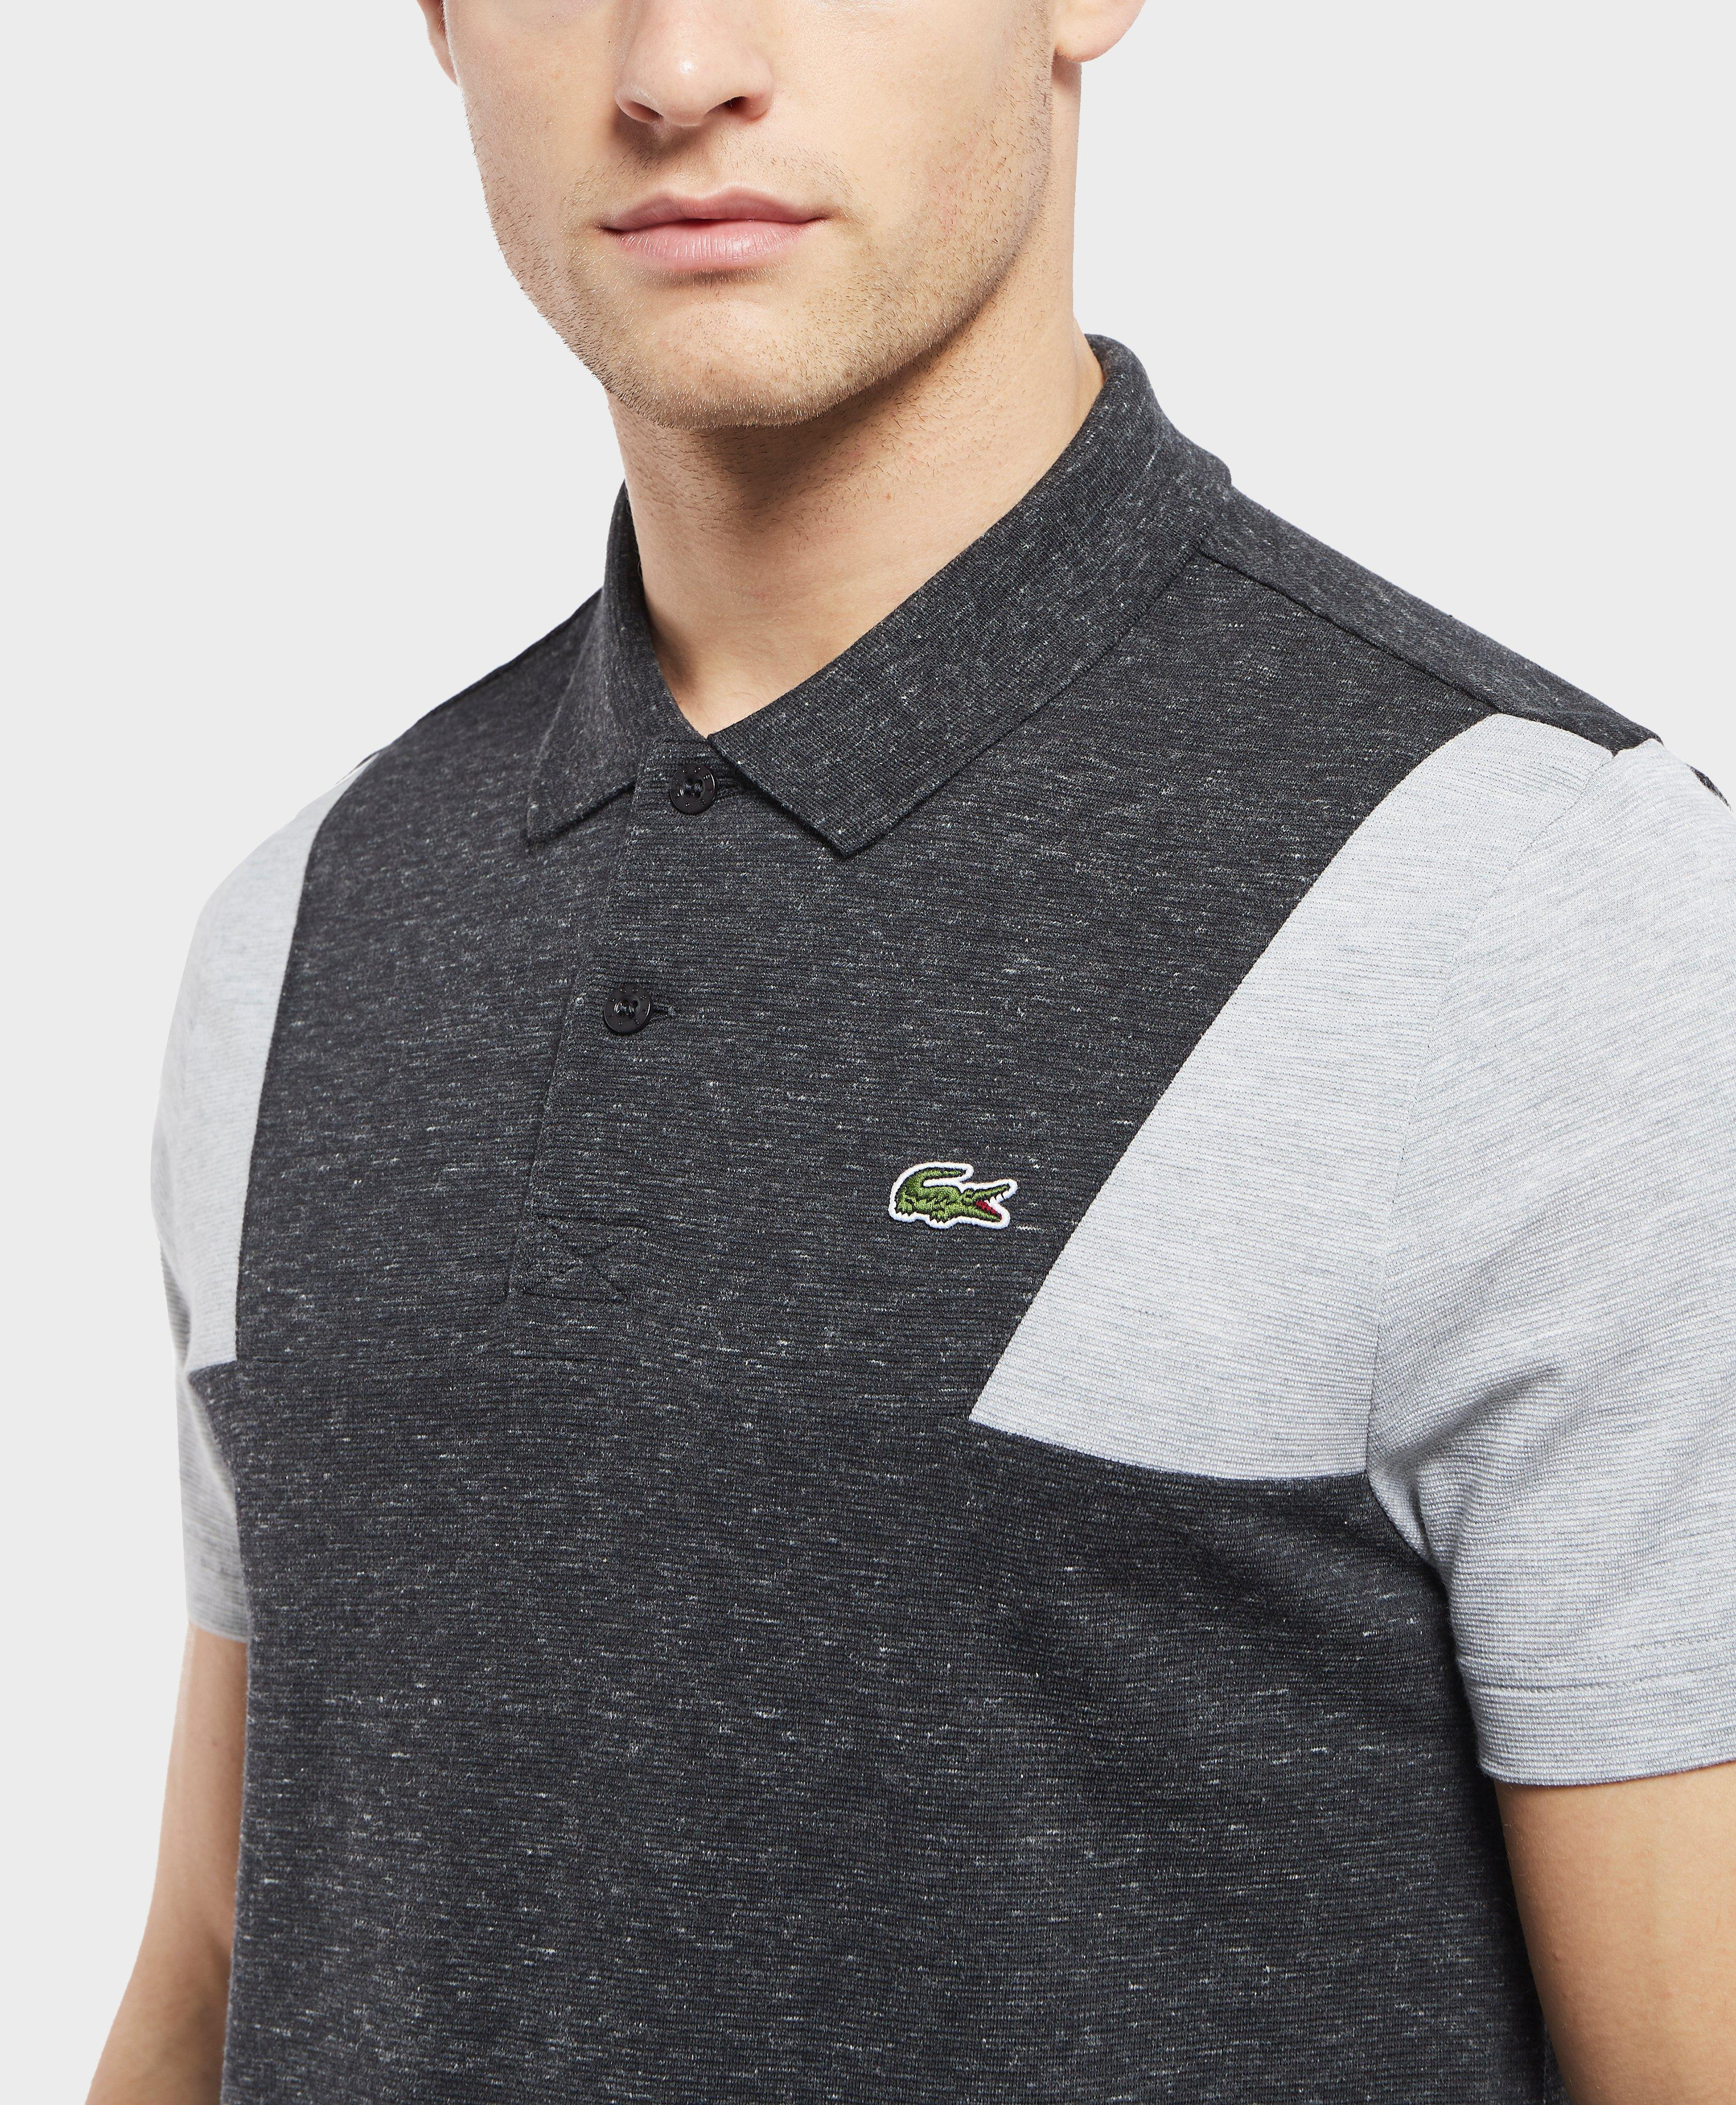 94b88b809 Lacoste - Multicolor Retro Panel Short Sleeve Polo Shirt for Men - Lyst.  View fullscreen